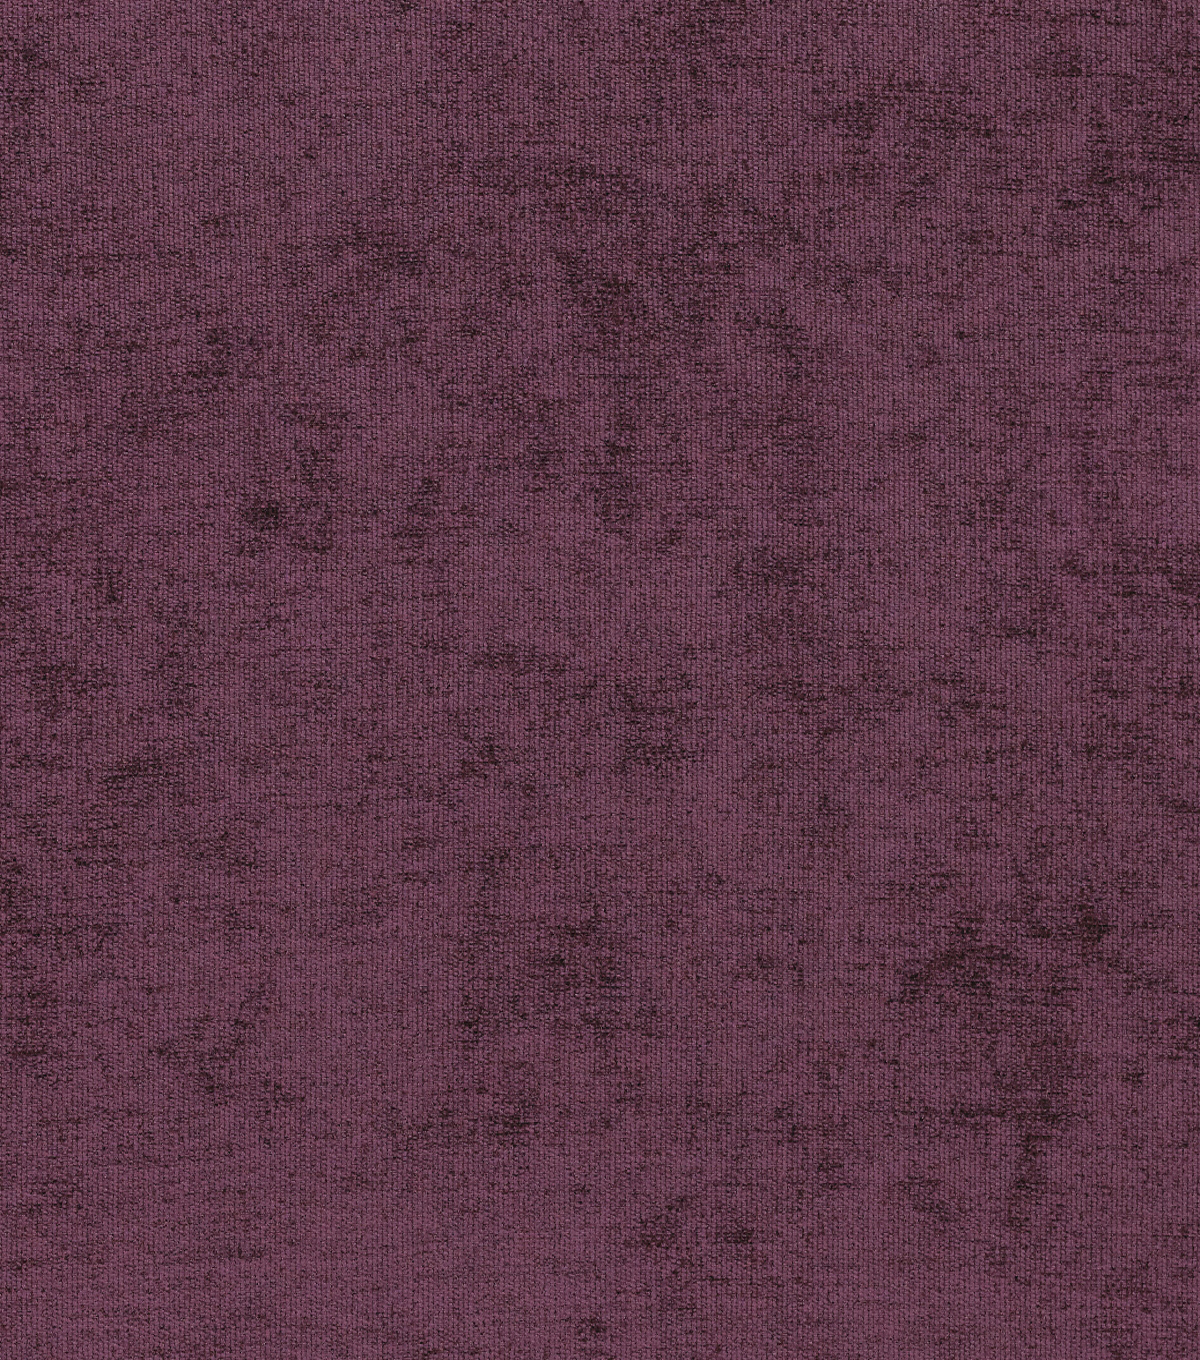 Home Decor 8\u0022x8\u0022 Fabric Swatch-Crypton Shelby Thistle